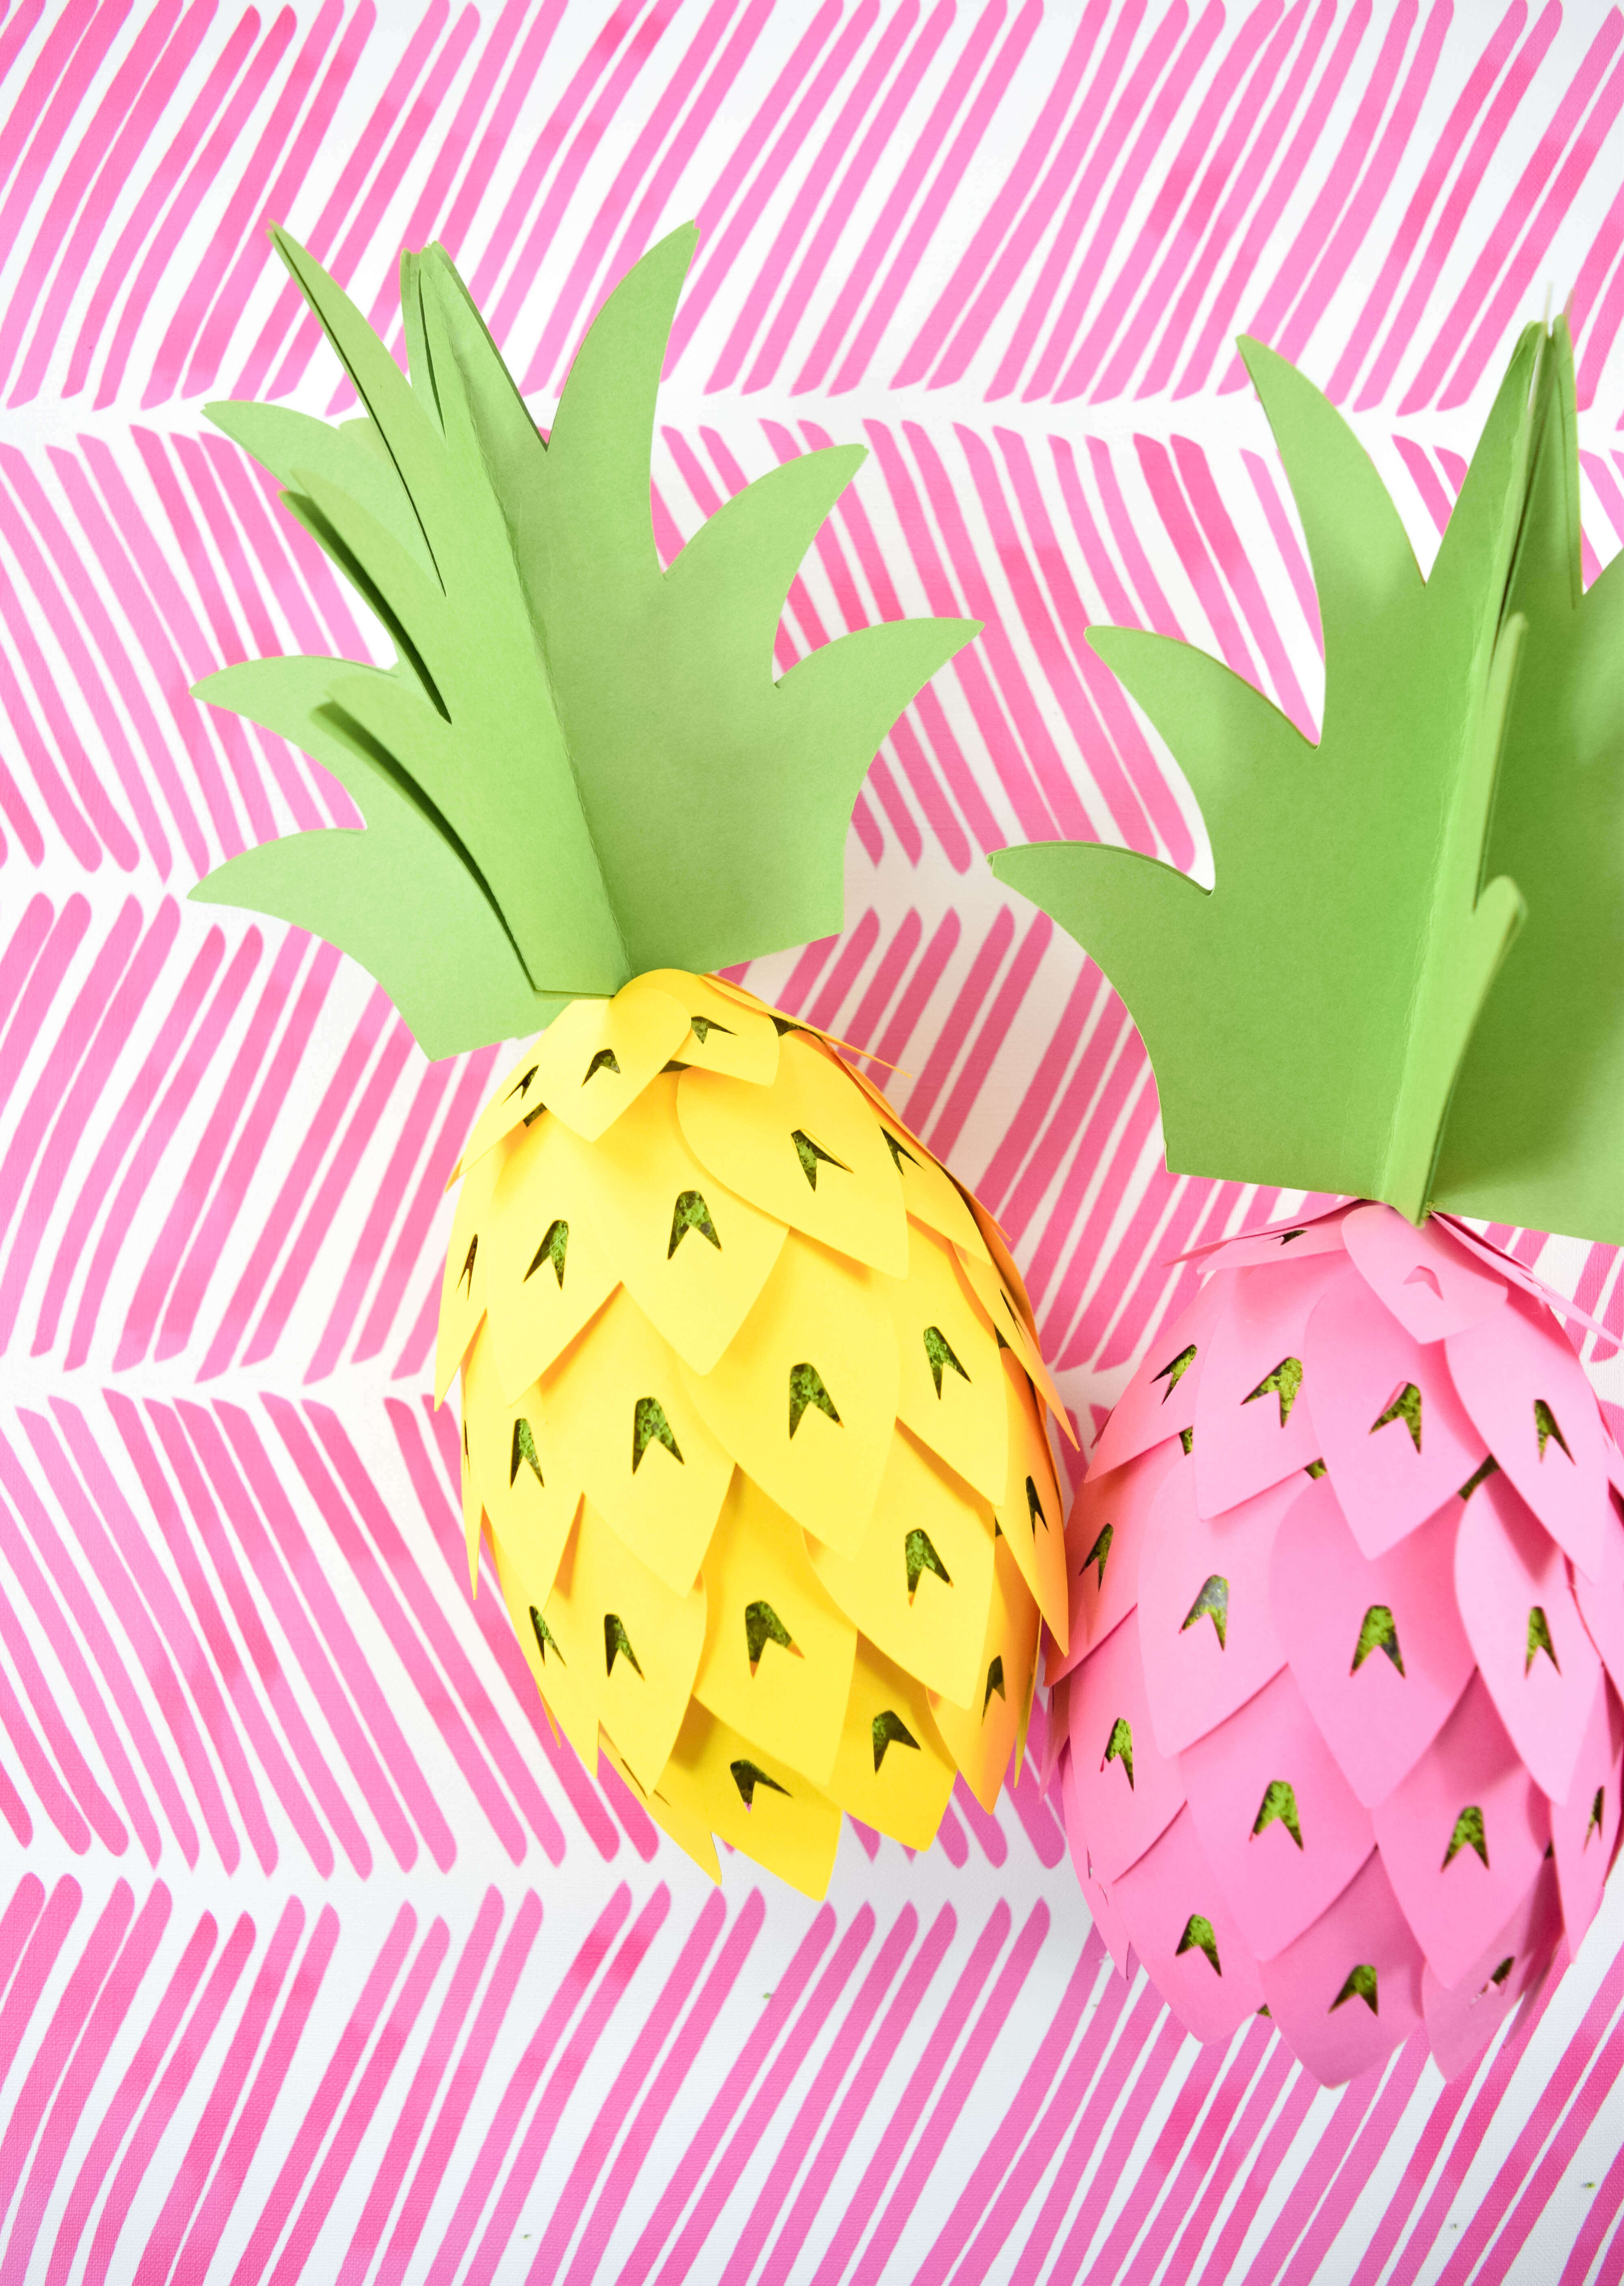 graphic relating to Pineapple Template Printable titled Pineapple Celebration Decorations - How toward: Do-it-yourself Paper Pineapple